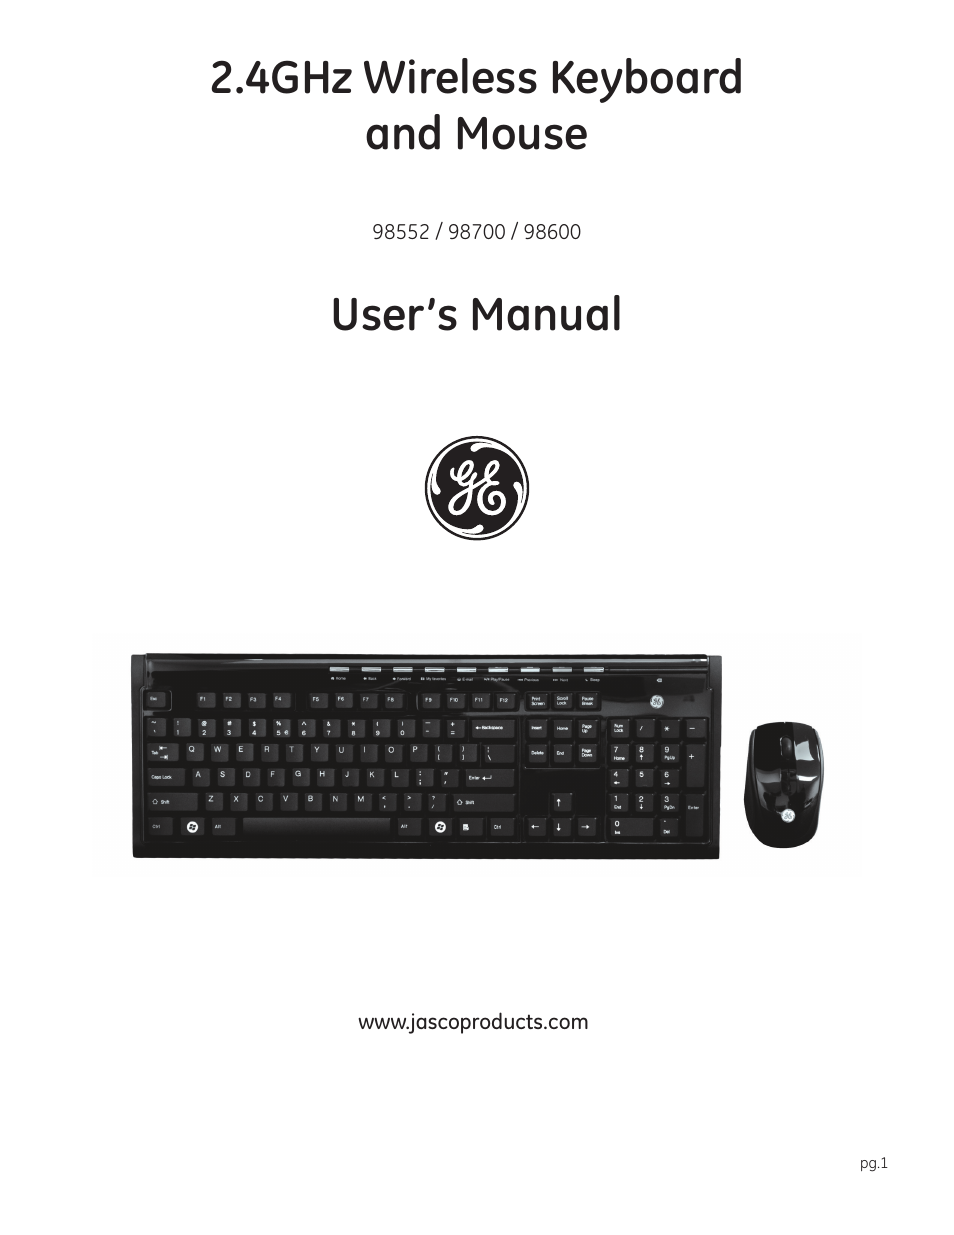 GE 98600 2.4GHz Wireless Keyboard & Mouse User Manual | 7 pages | Also for:  98552 2.4GHz Wireless Keyboard & Mouse, 98700 2.4GHz Wireless Keyboard &  Mouse